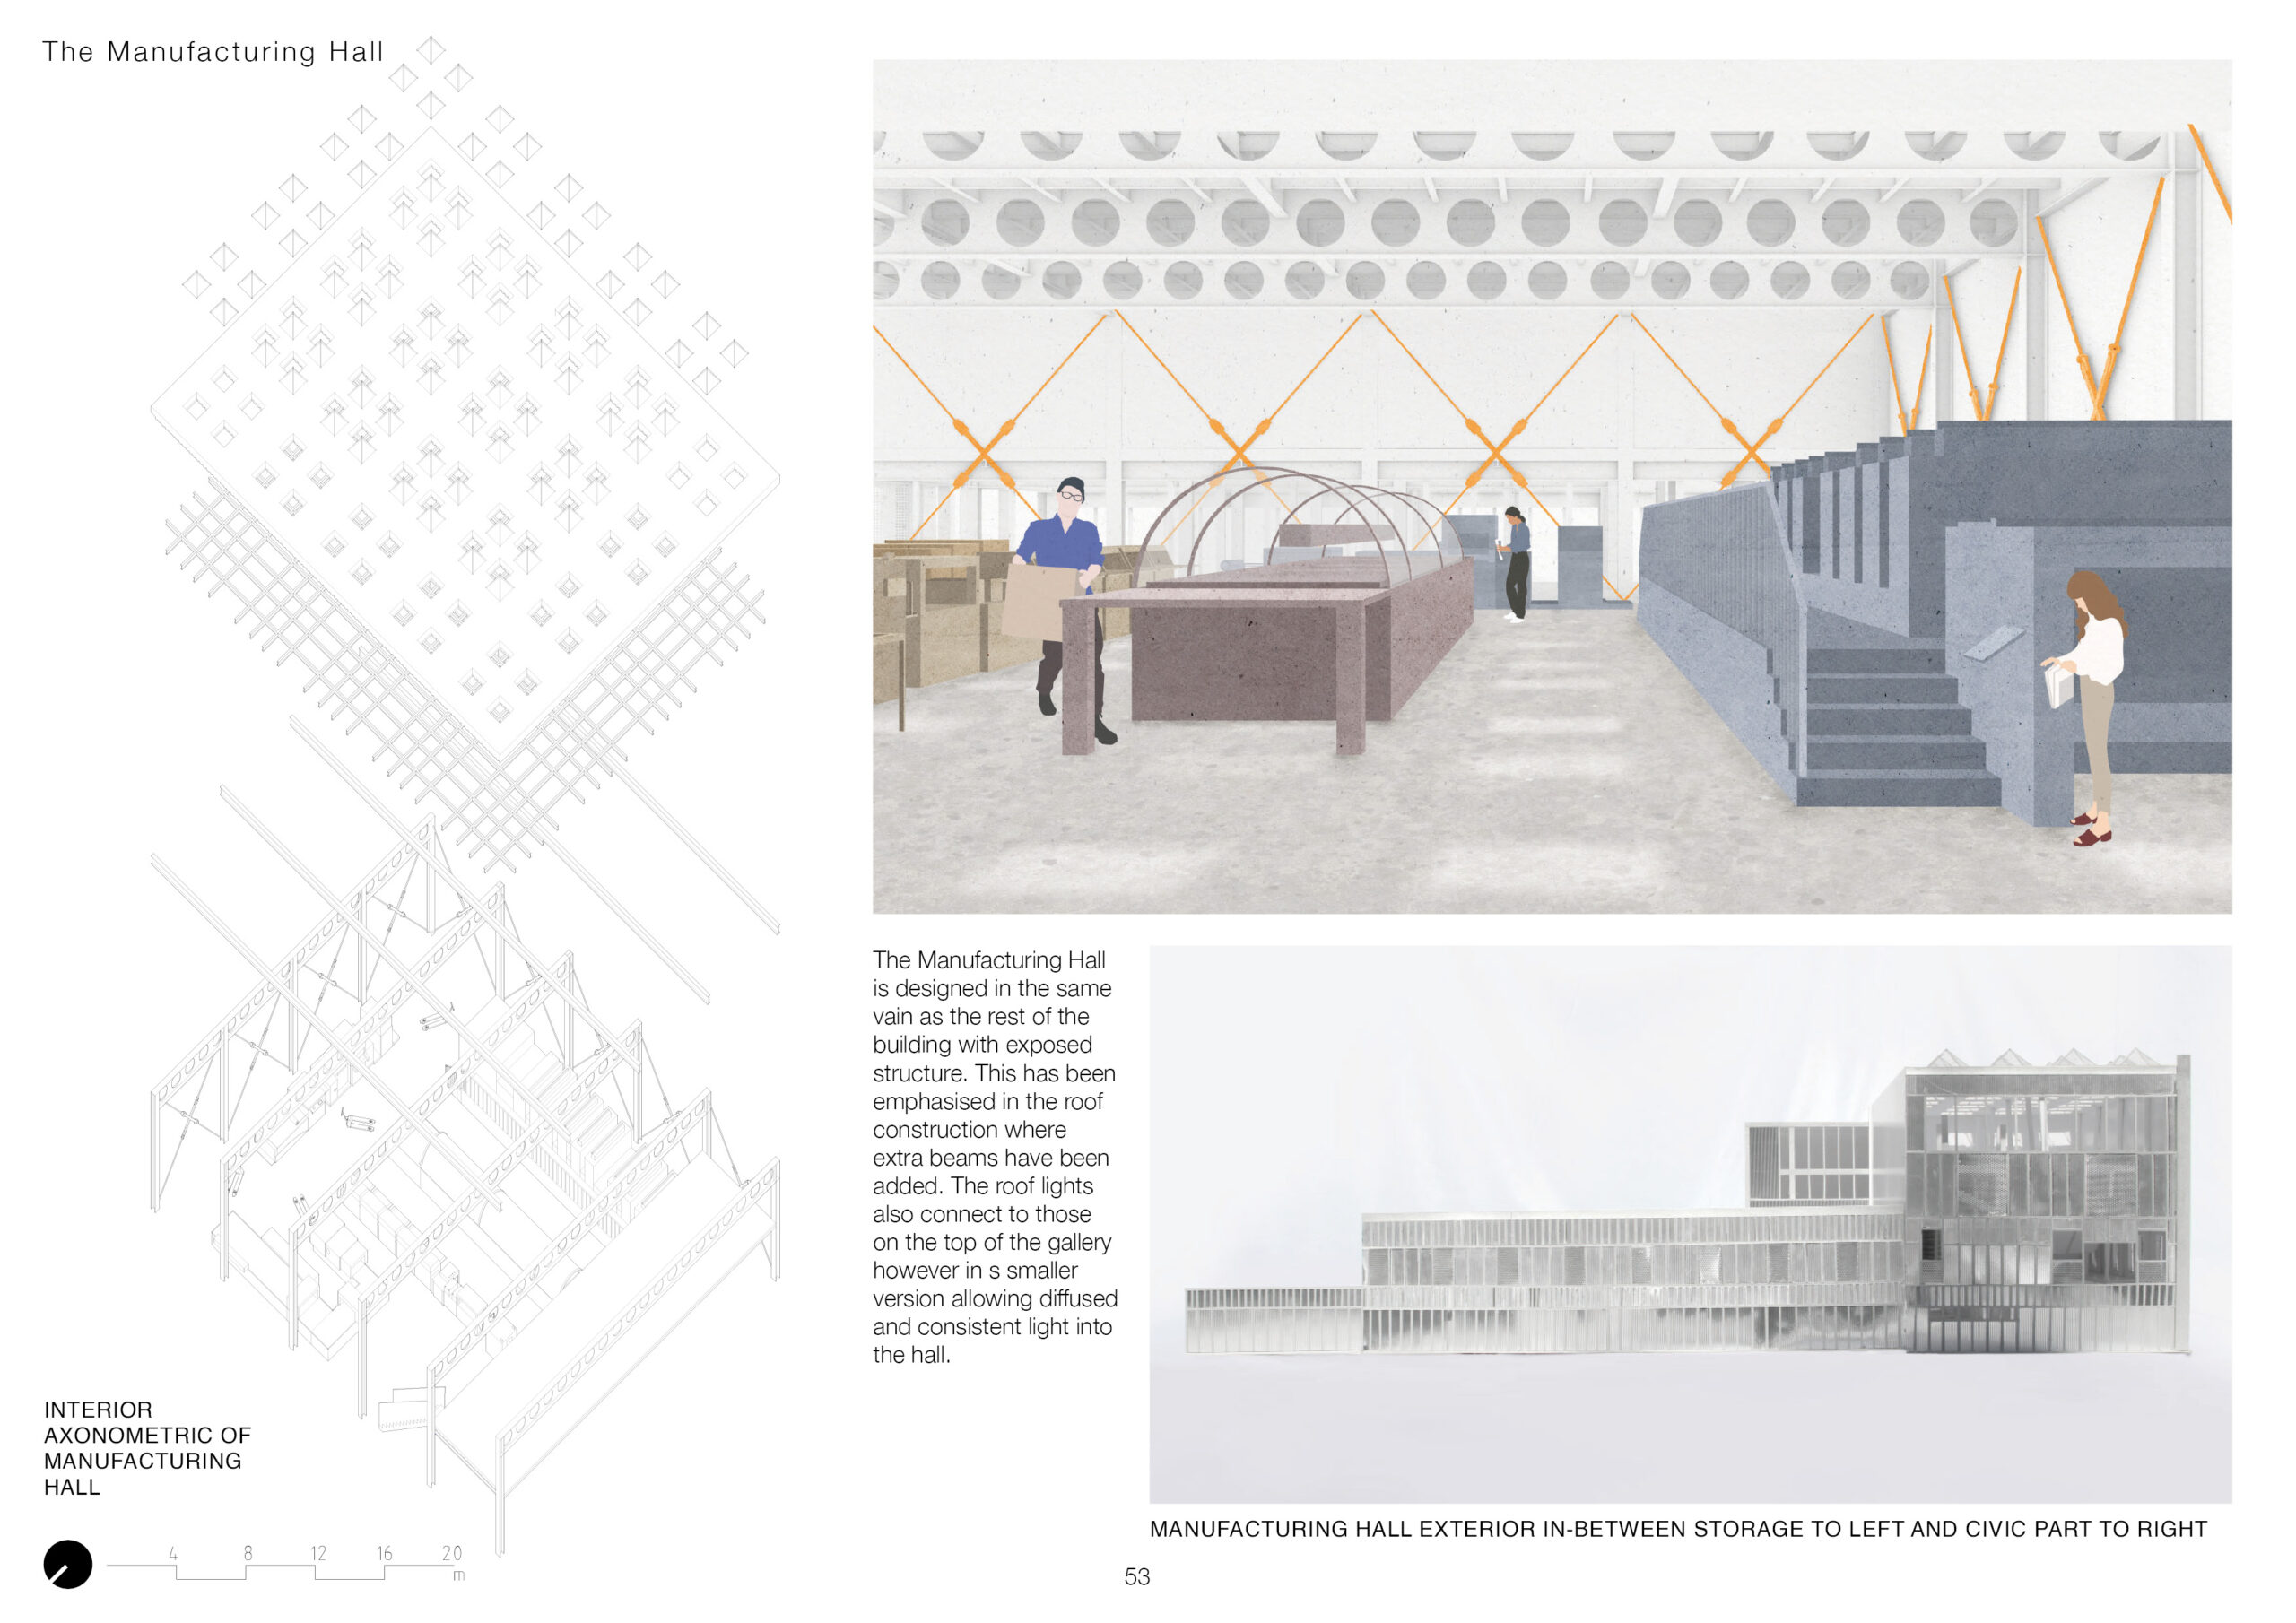 portfolio page 1 has an axonometric drawing of the manufacturing hall to the left. The left shows the manufacturing hall has been rendered to the right which shows all white structure bar the bracing which is orange